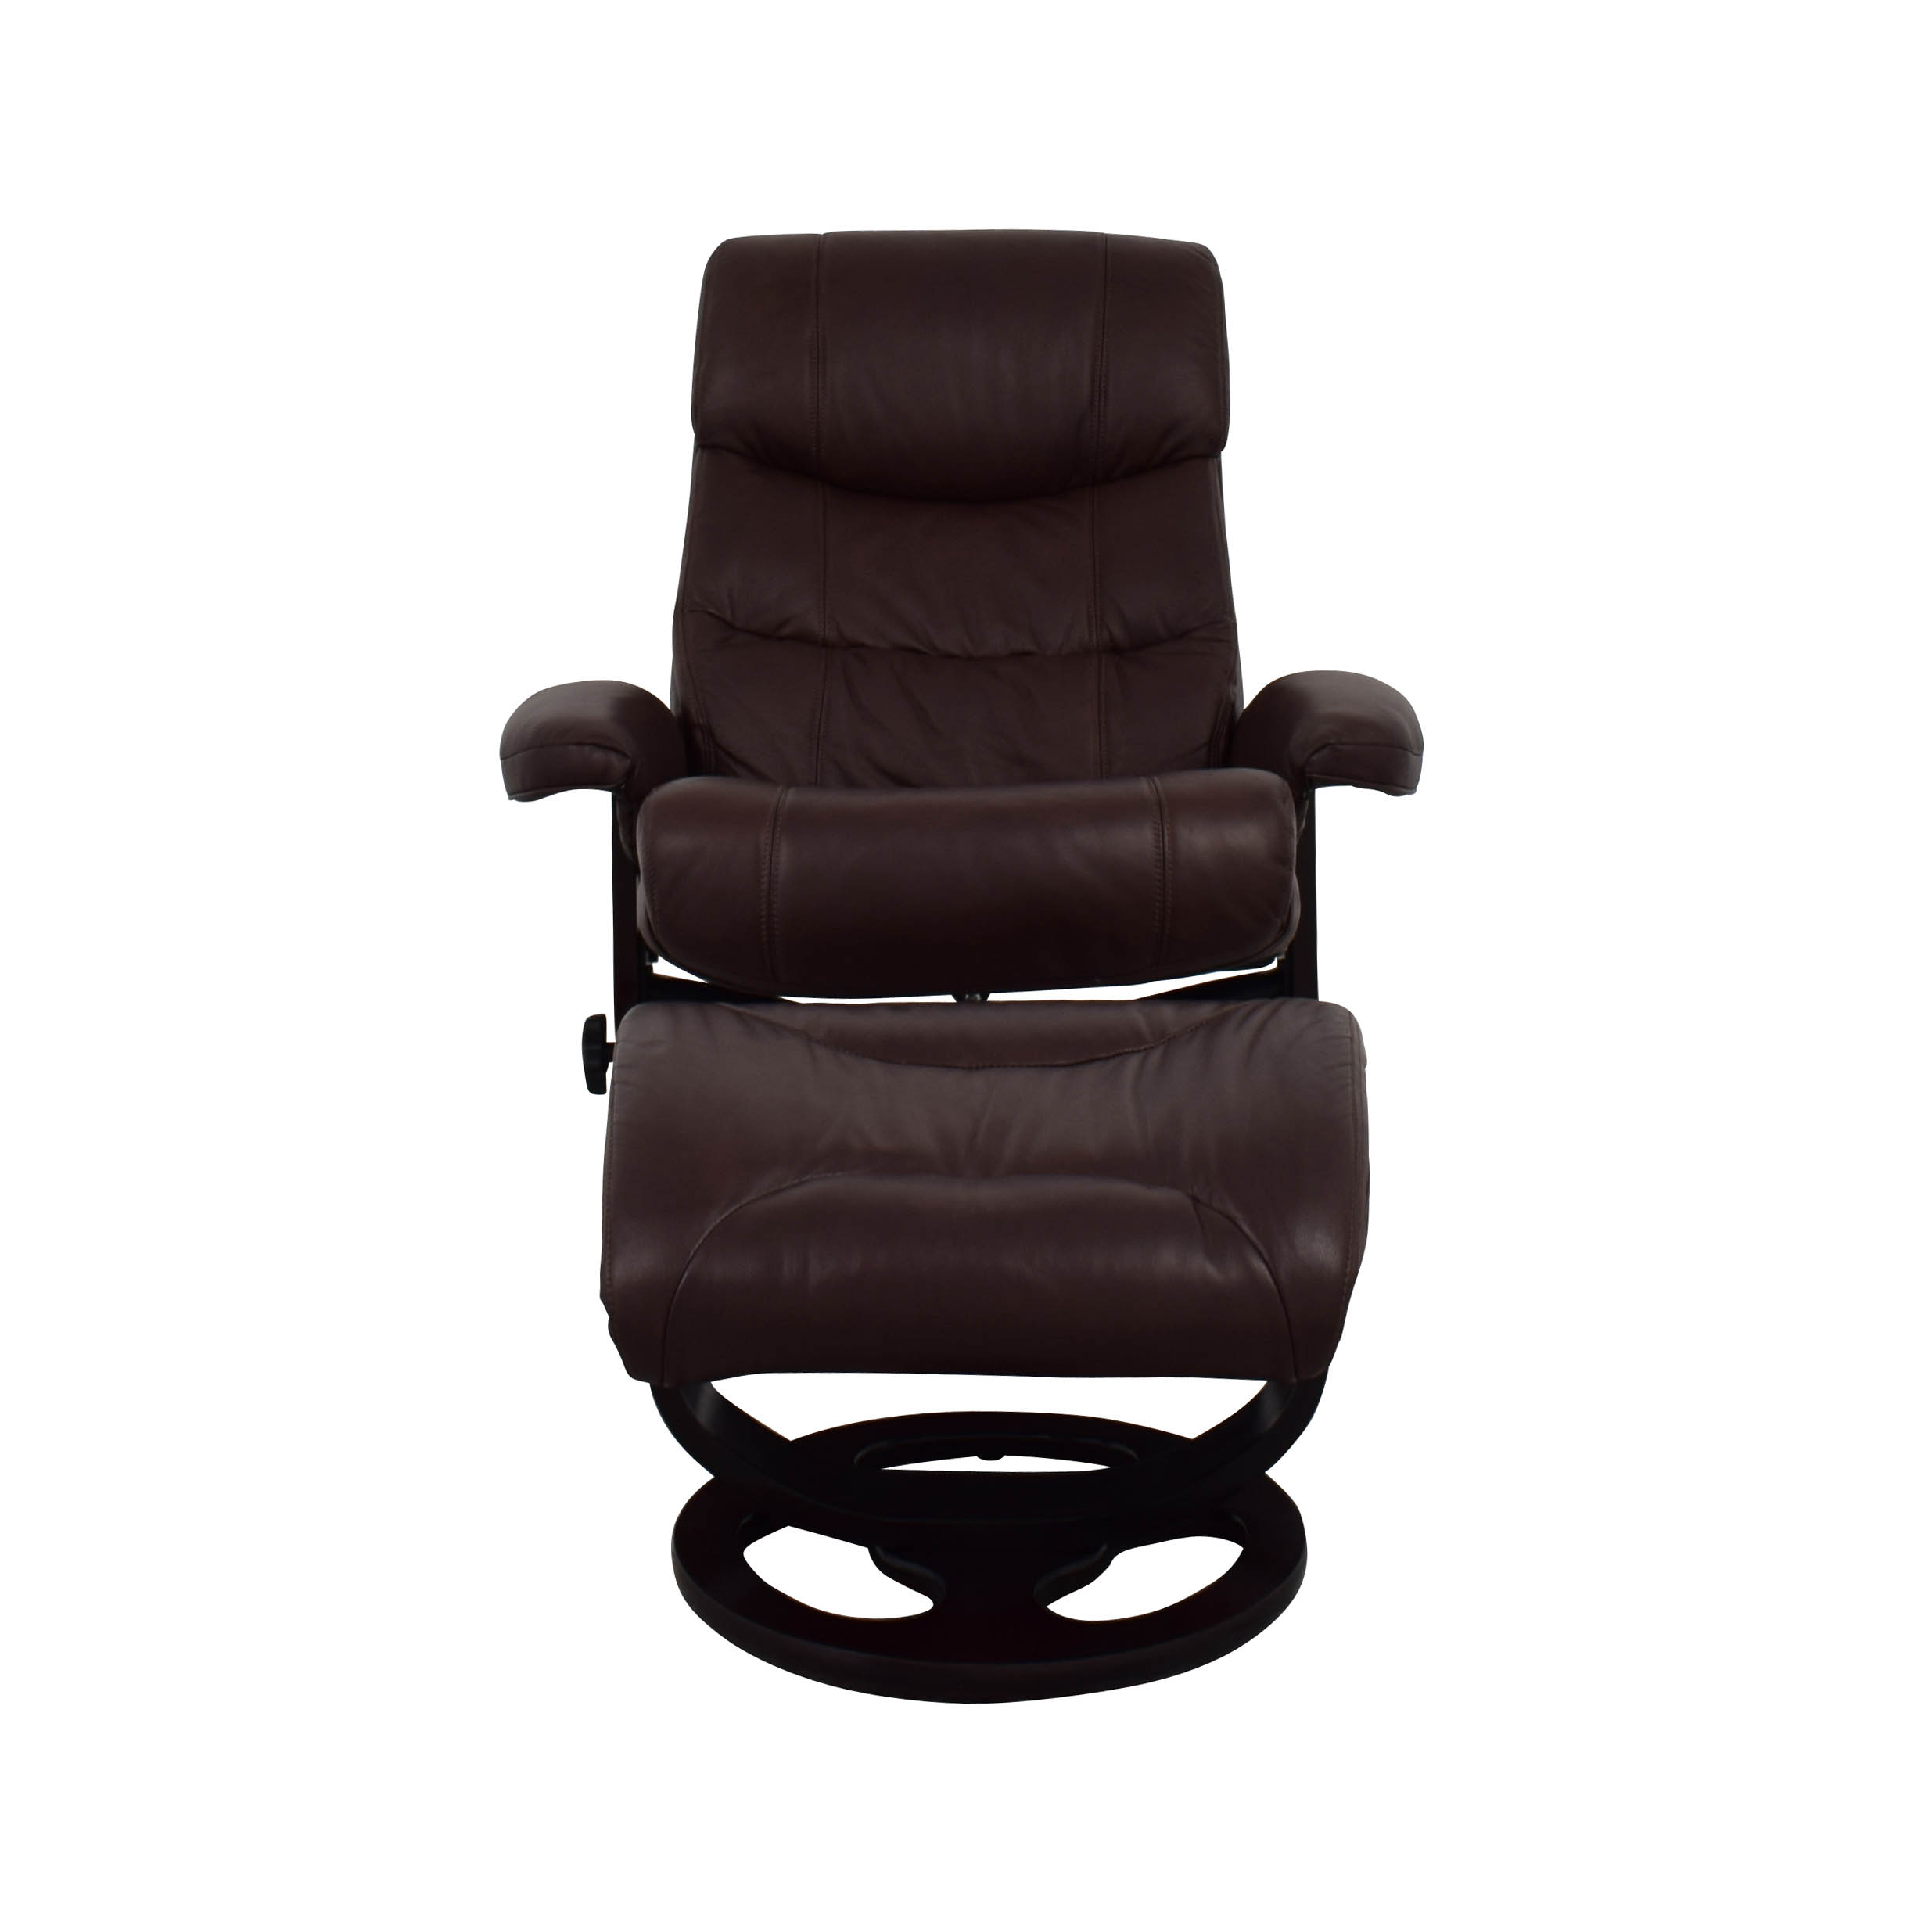 massage chair bail recliner reviews chairs top cheap dollars under best